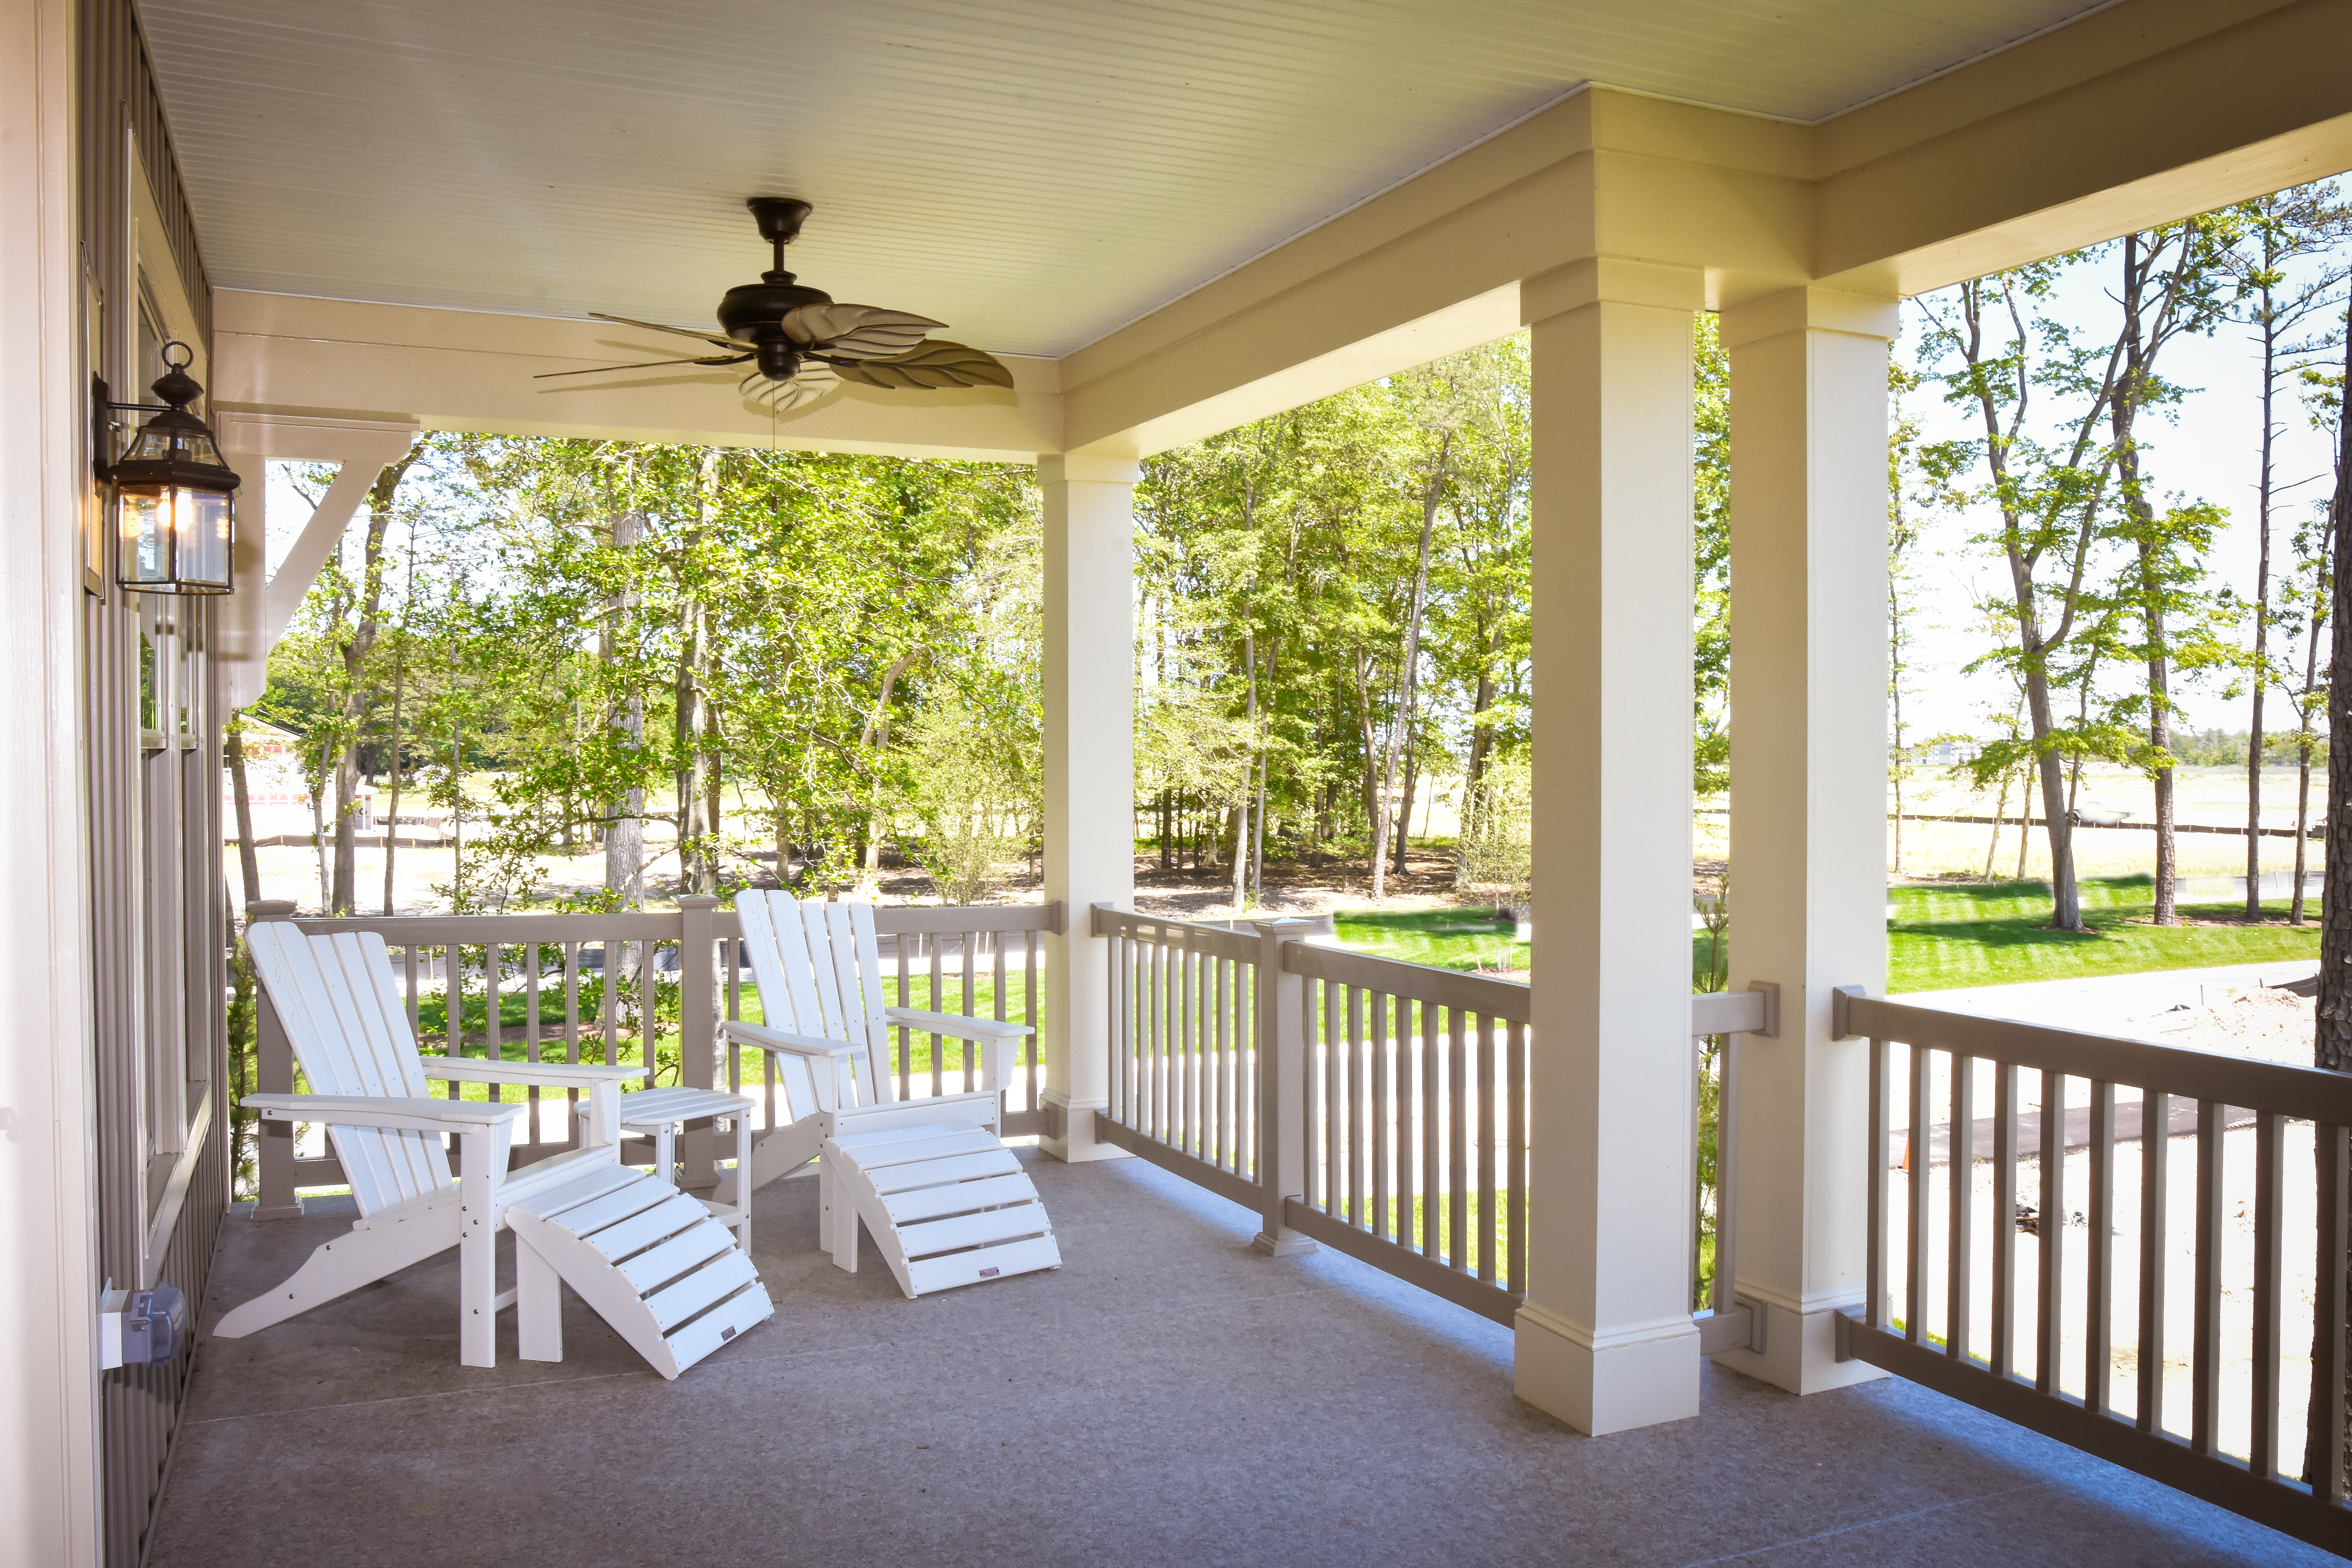 Included double decker back porches are designed to showcase this natural serene setting.